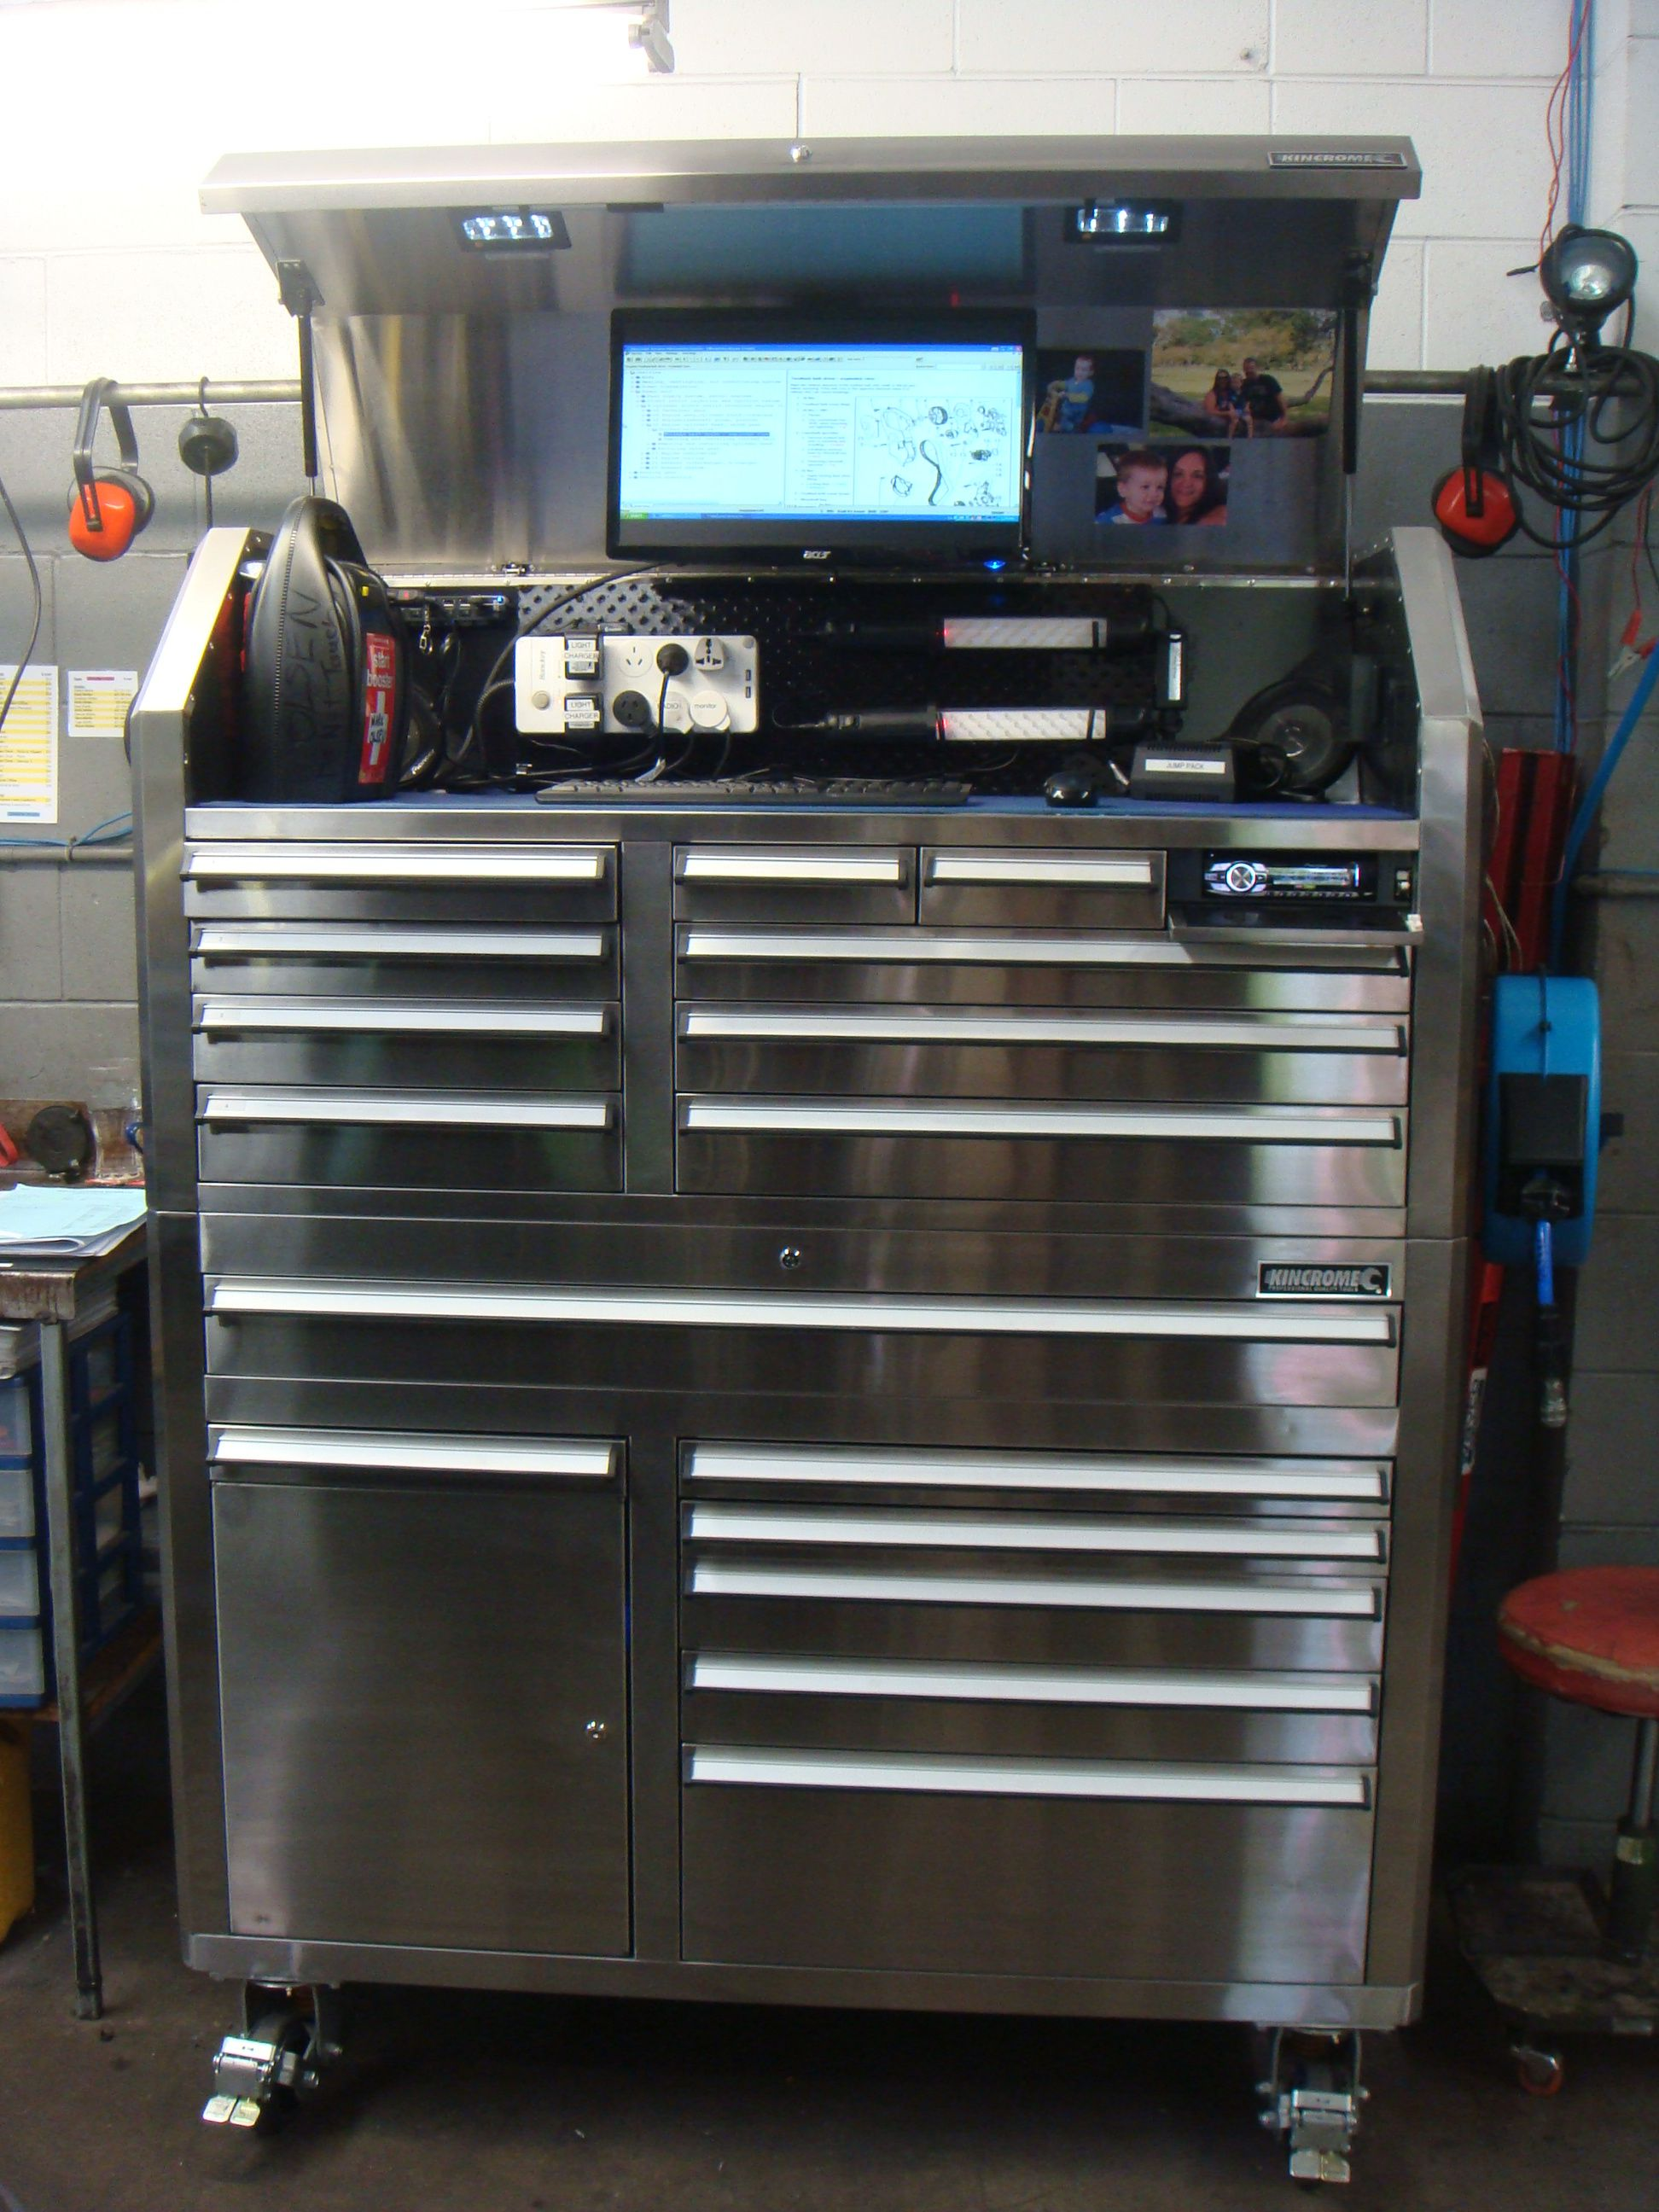 Bunnings Metal Racking I Bought This Toolbox At Bunnings In New Zealand I T Has